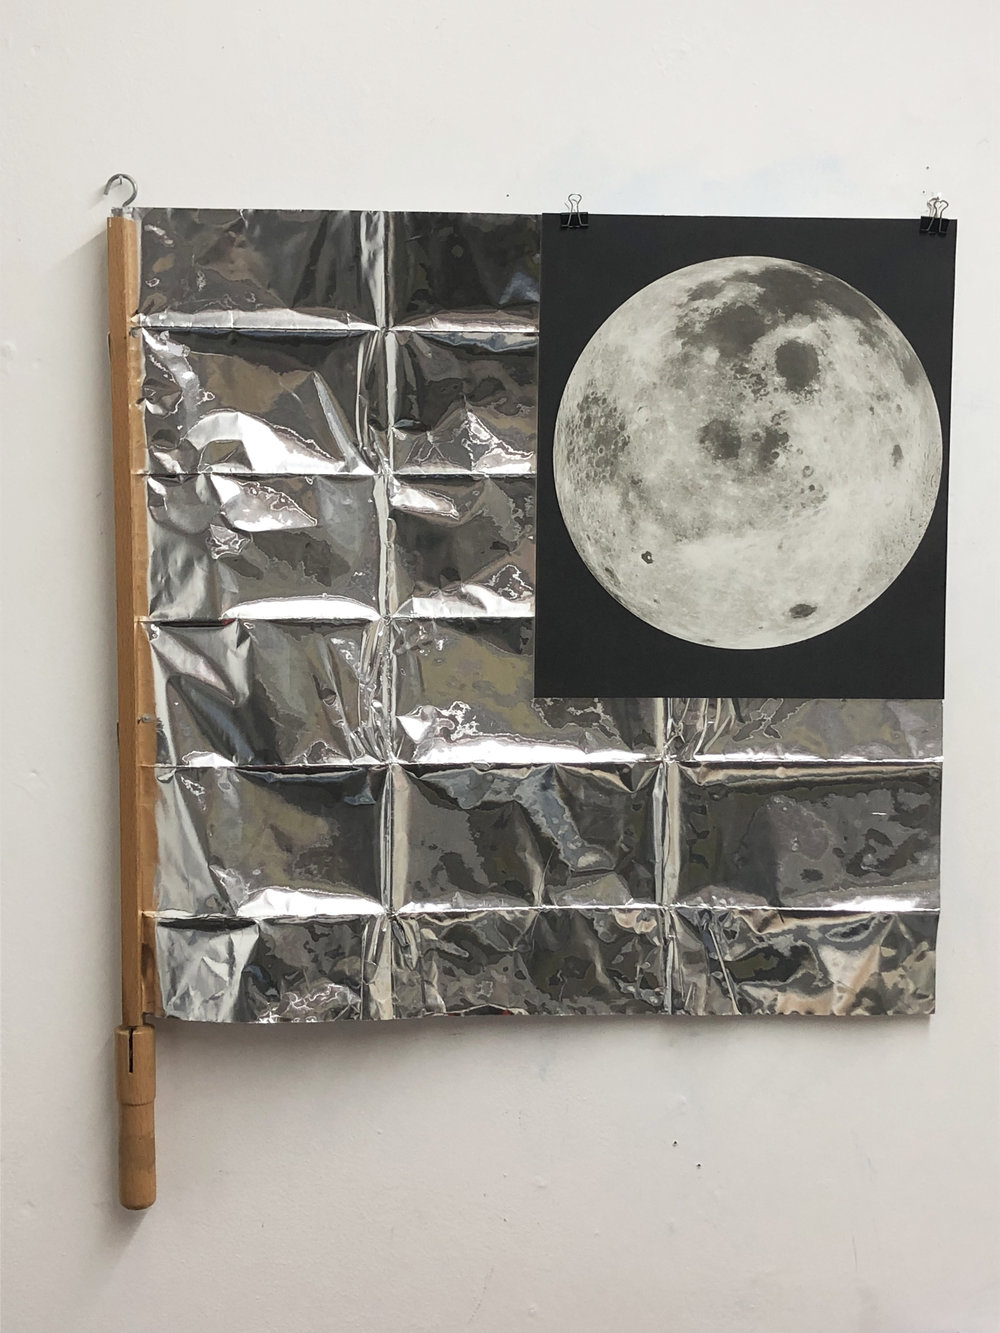 Moon #2 2019 Newspaper holder, Insulation foil, Print, Clips